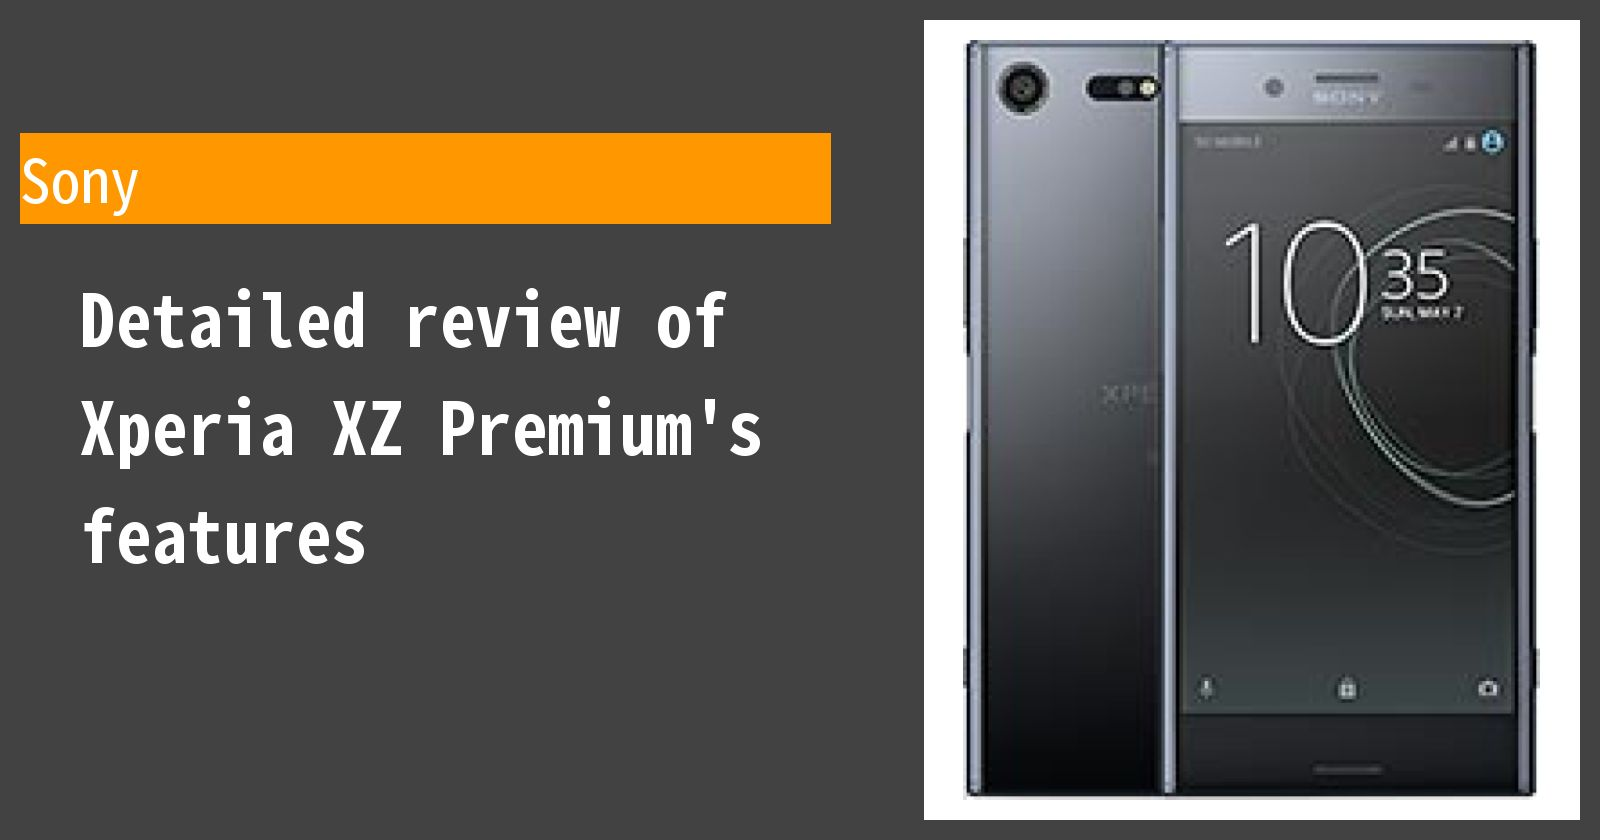 Detailed review of Xperia XZ Premium's features